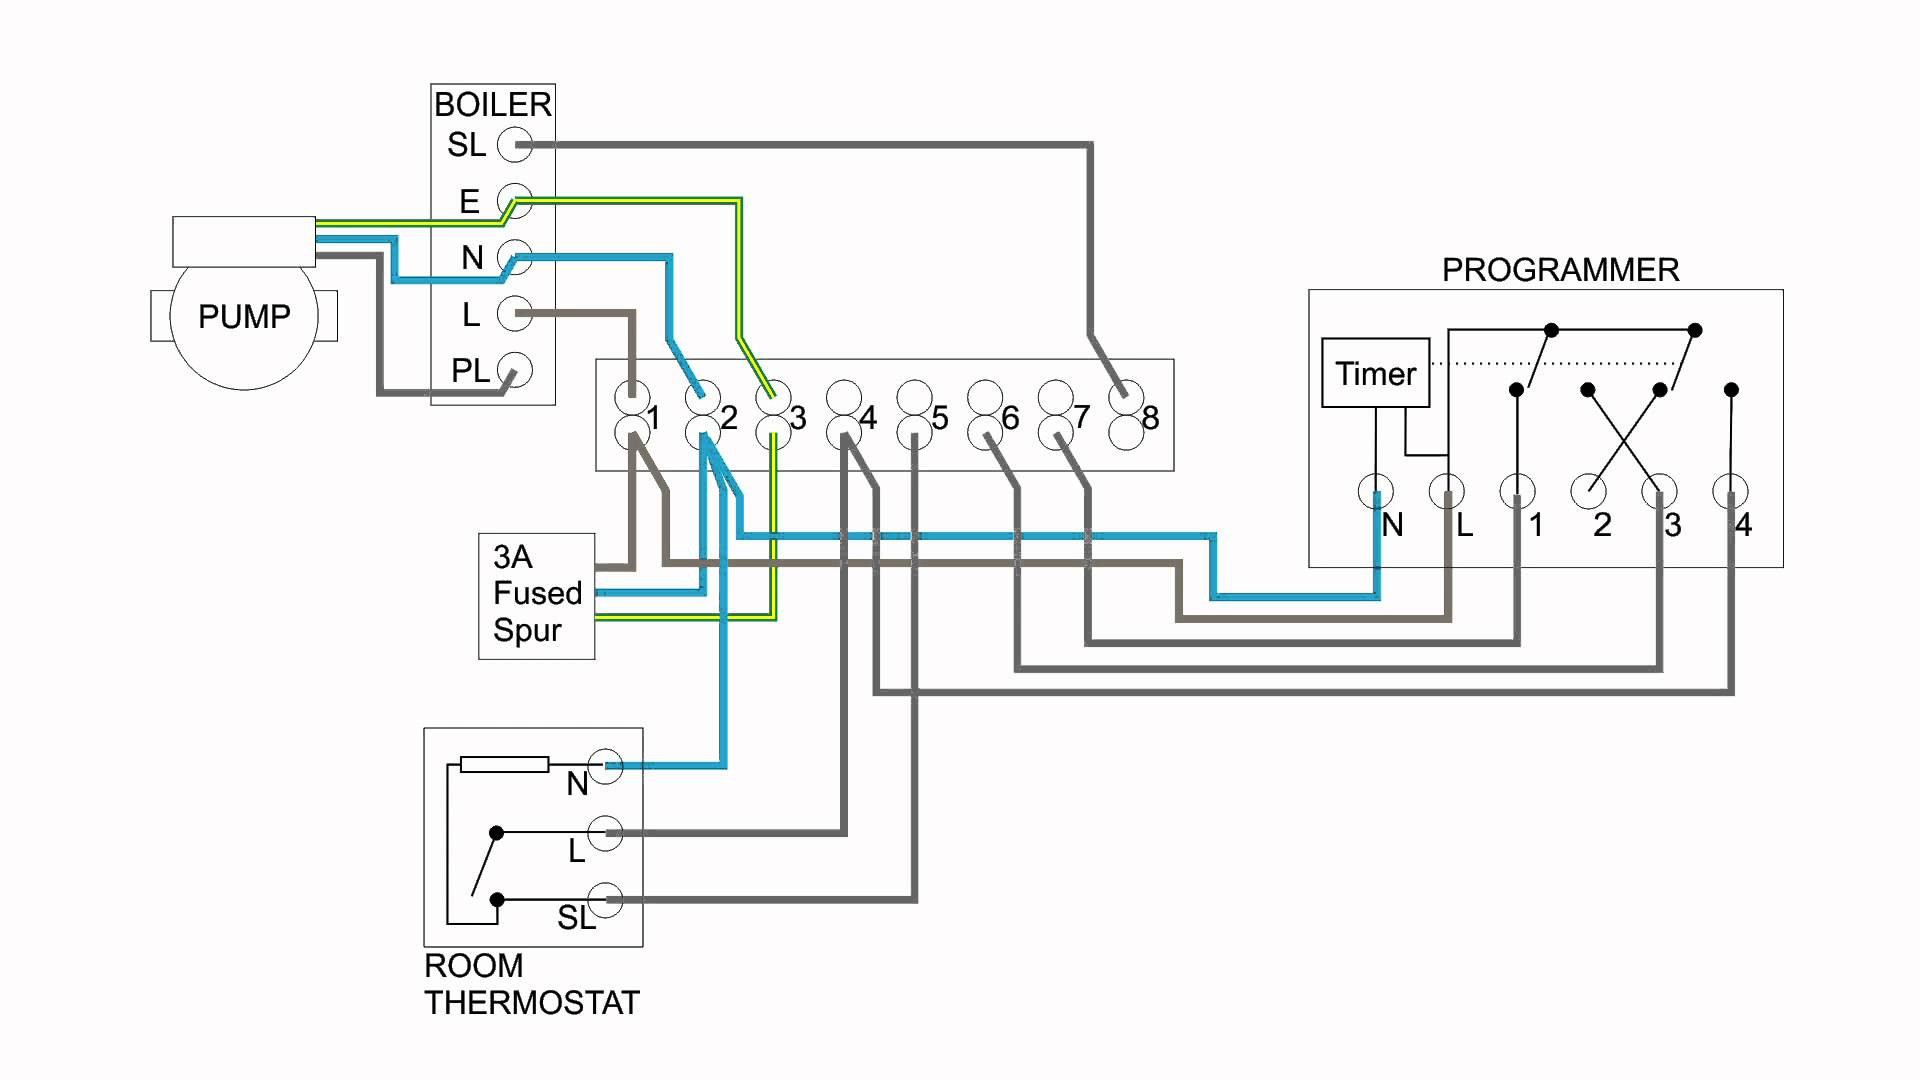 boiler wiring diagram Download-central boiler thermostat wiring diagram Download Hive Thermostat Wiring Diagram New Central Heating Electrical Wiring 8-g